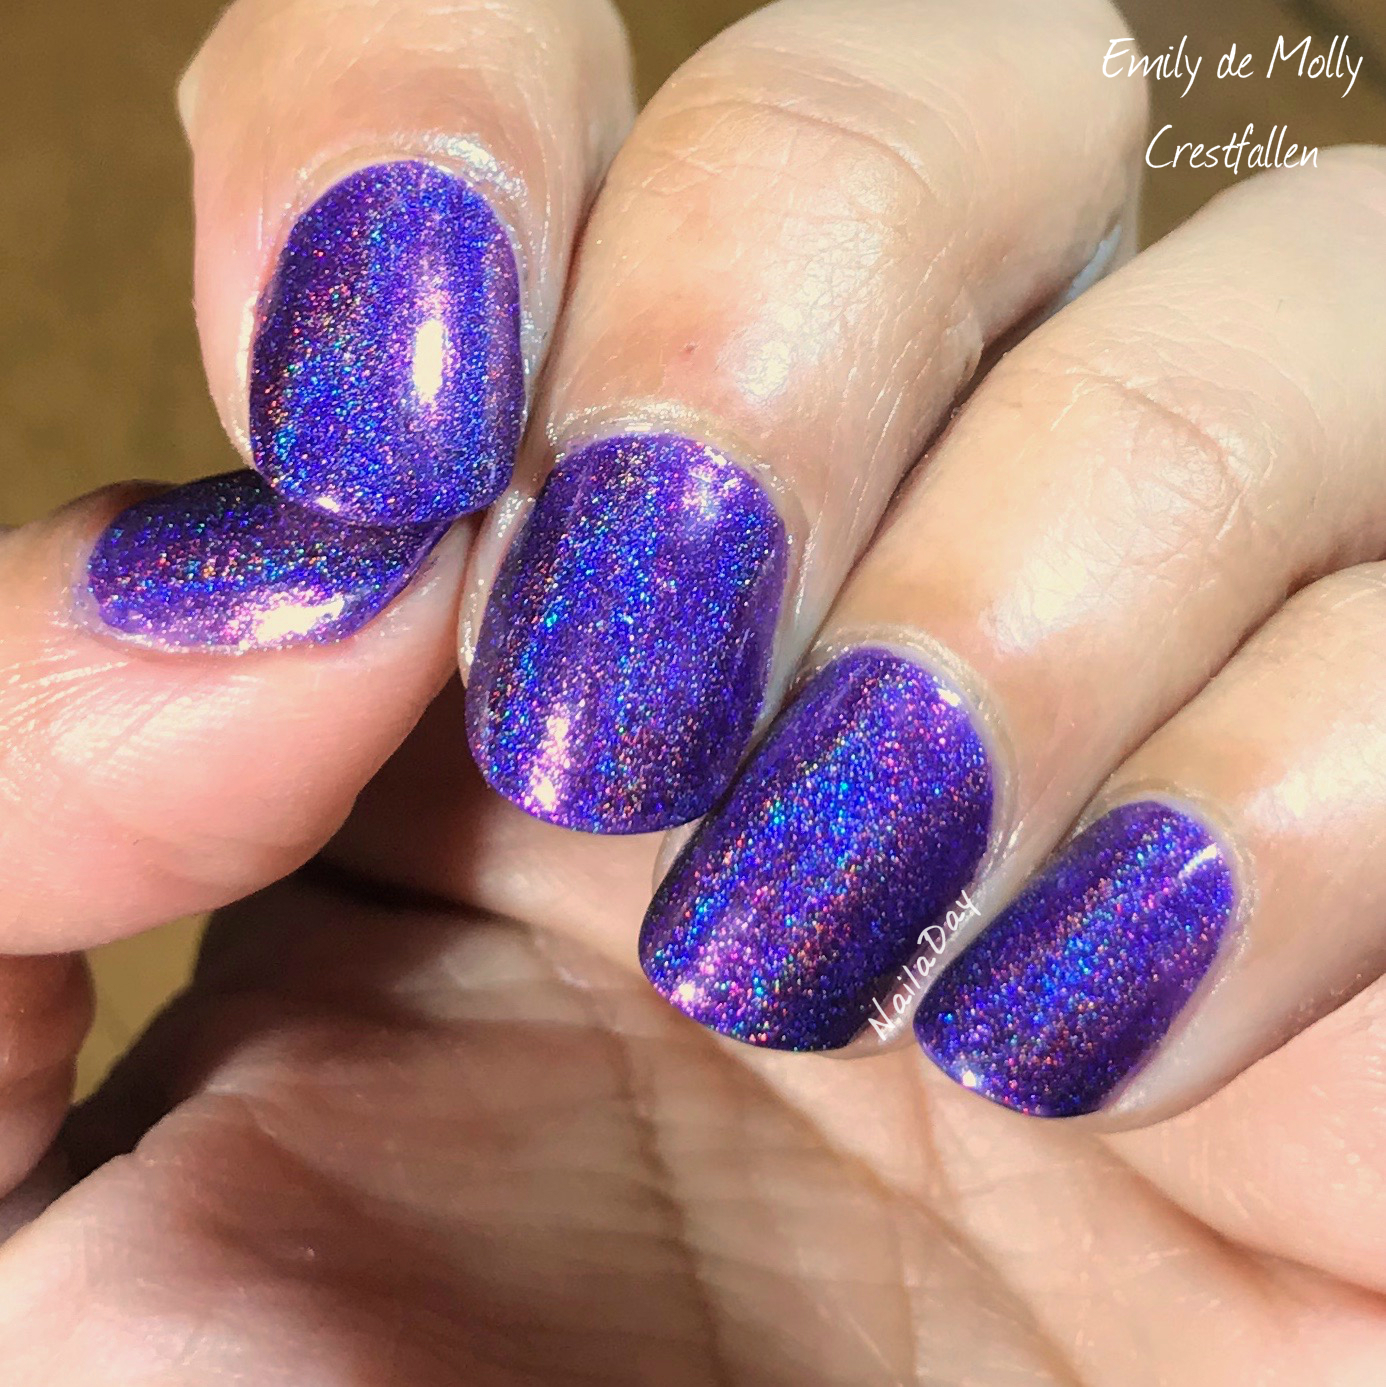 NailaDay: Emily de Molly Crestfallen